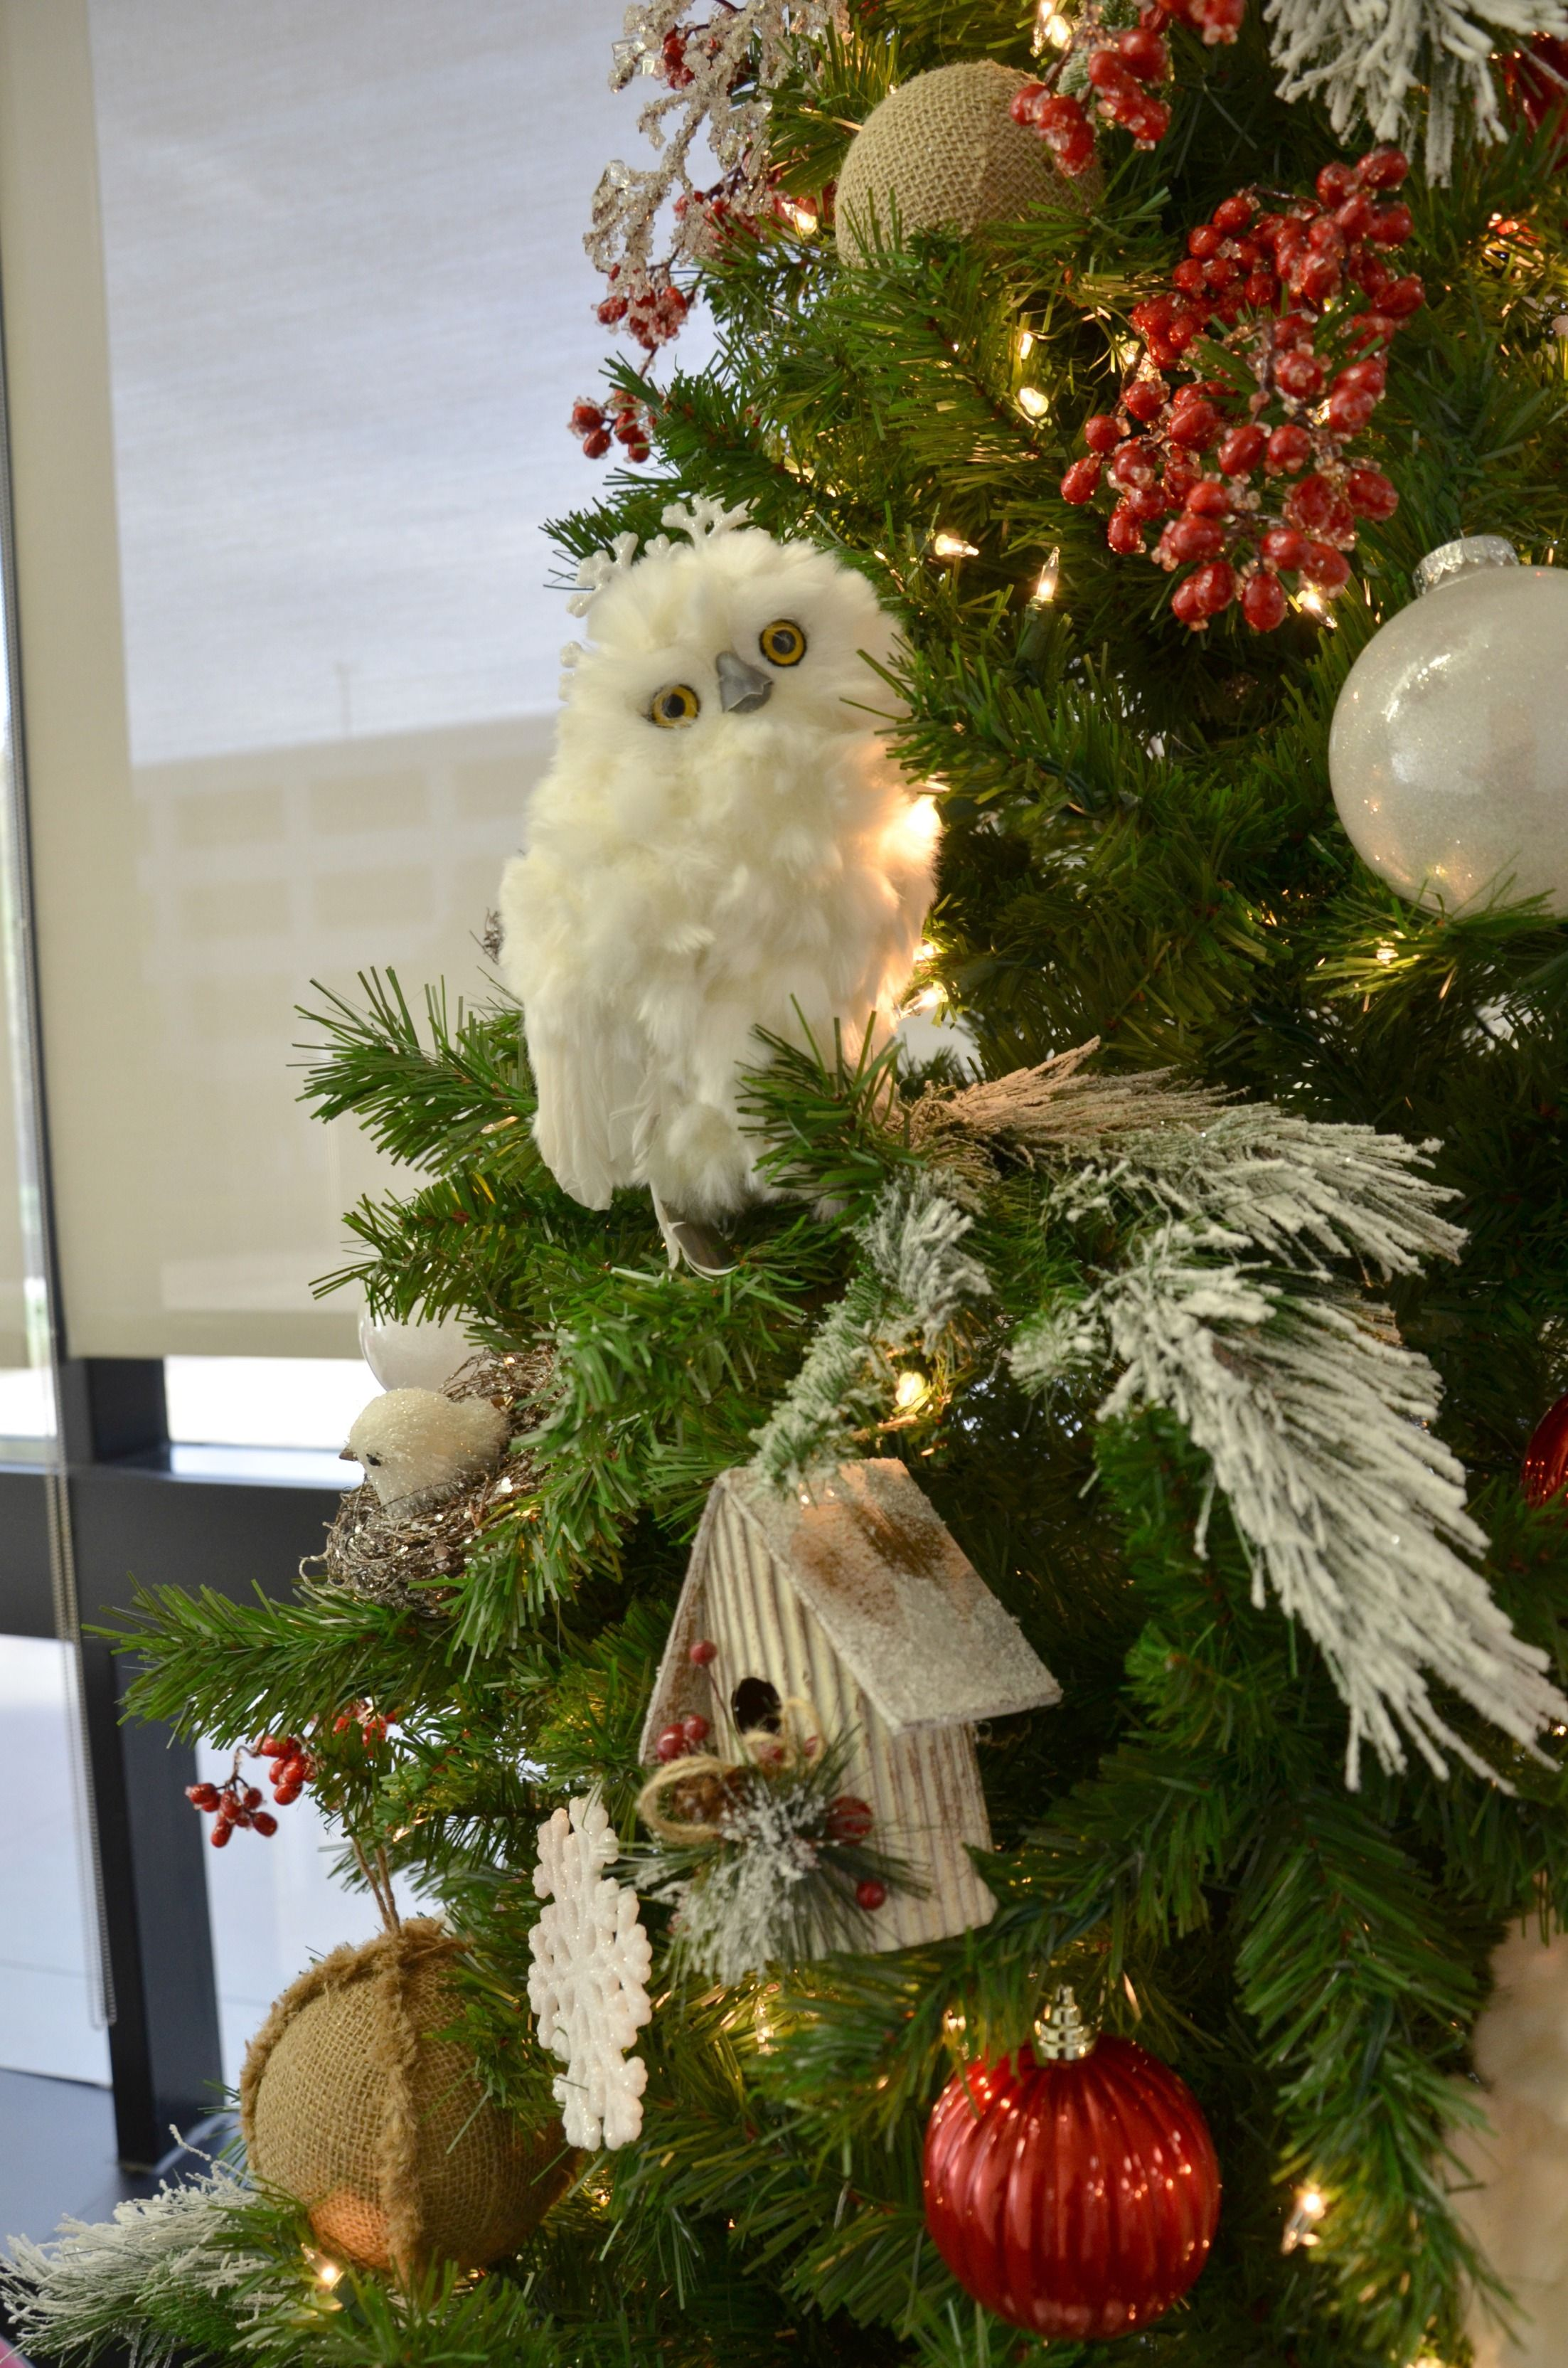 Owl Nature Decorated Christmas Tree Rental Commercial Christmas Decorator Christmas Tree Rentals Christmas Decoration Re Christmas Tree Decorations Christmas Decorations Christmas